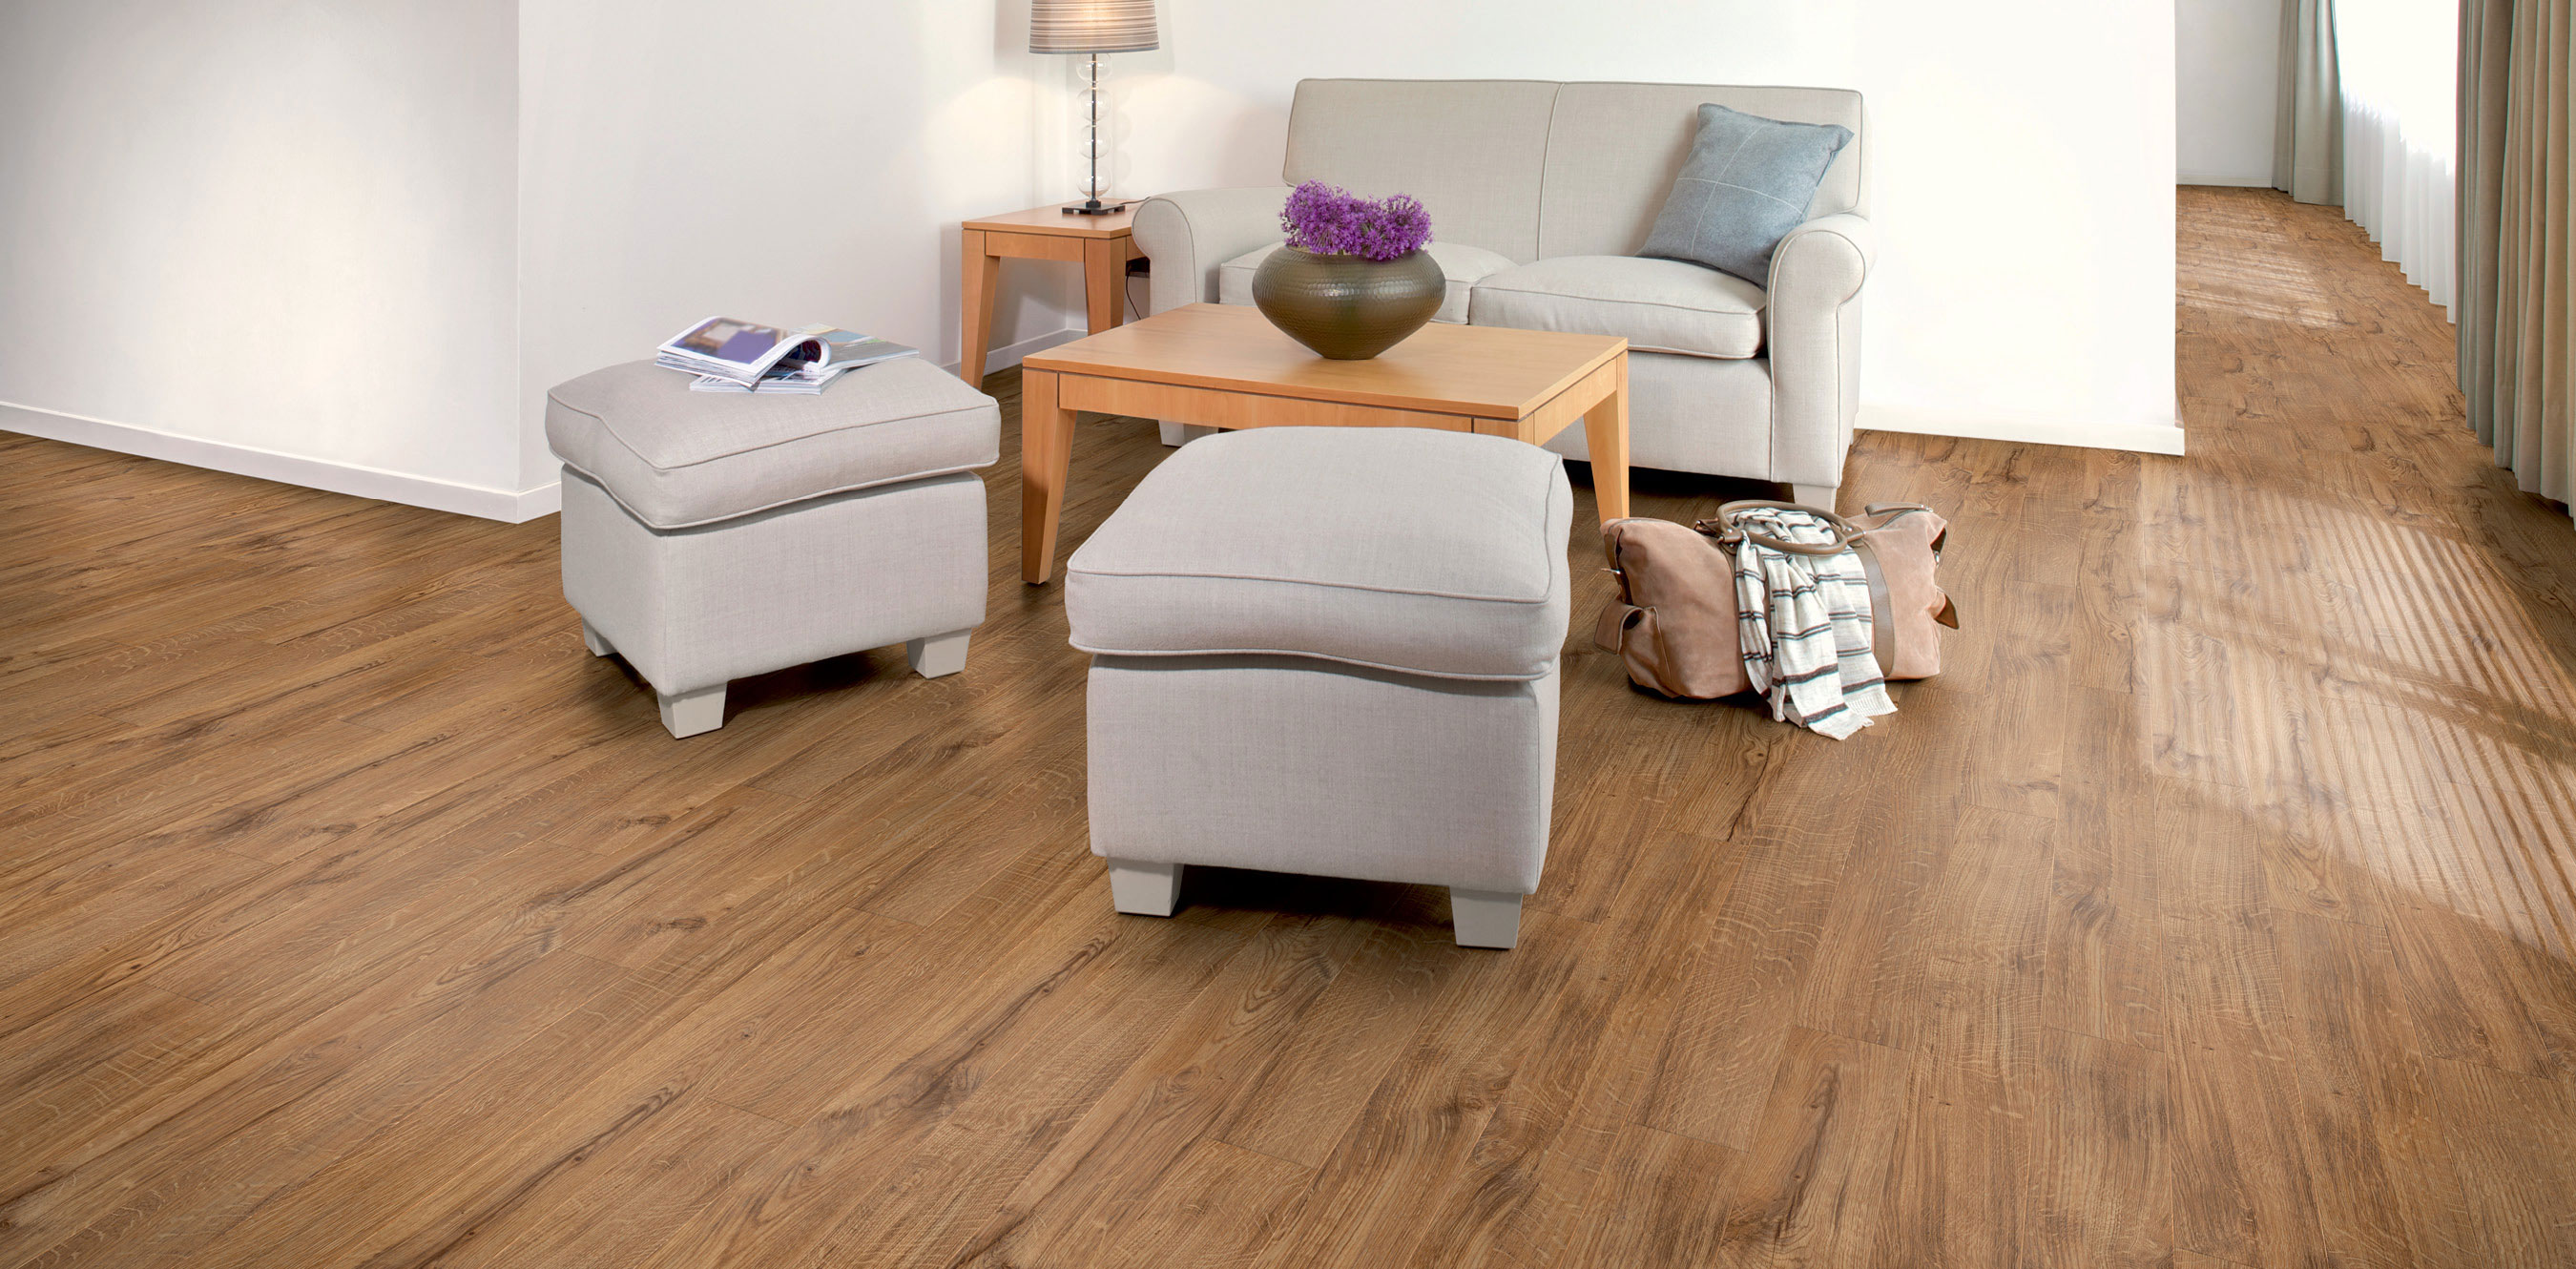 Amtico Spacia LVT in Sherwood Oak (SS5W2532)